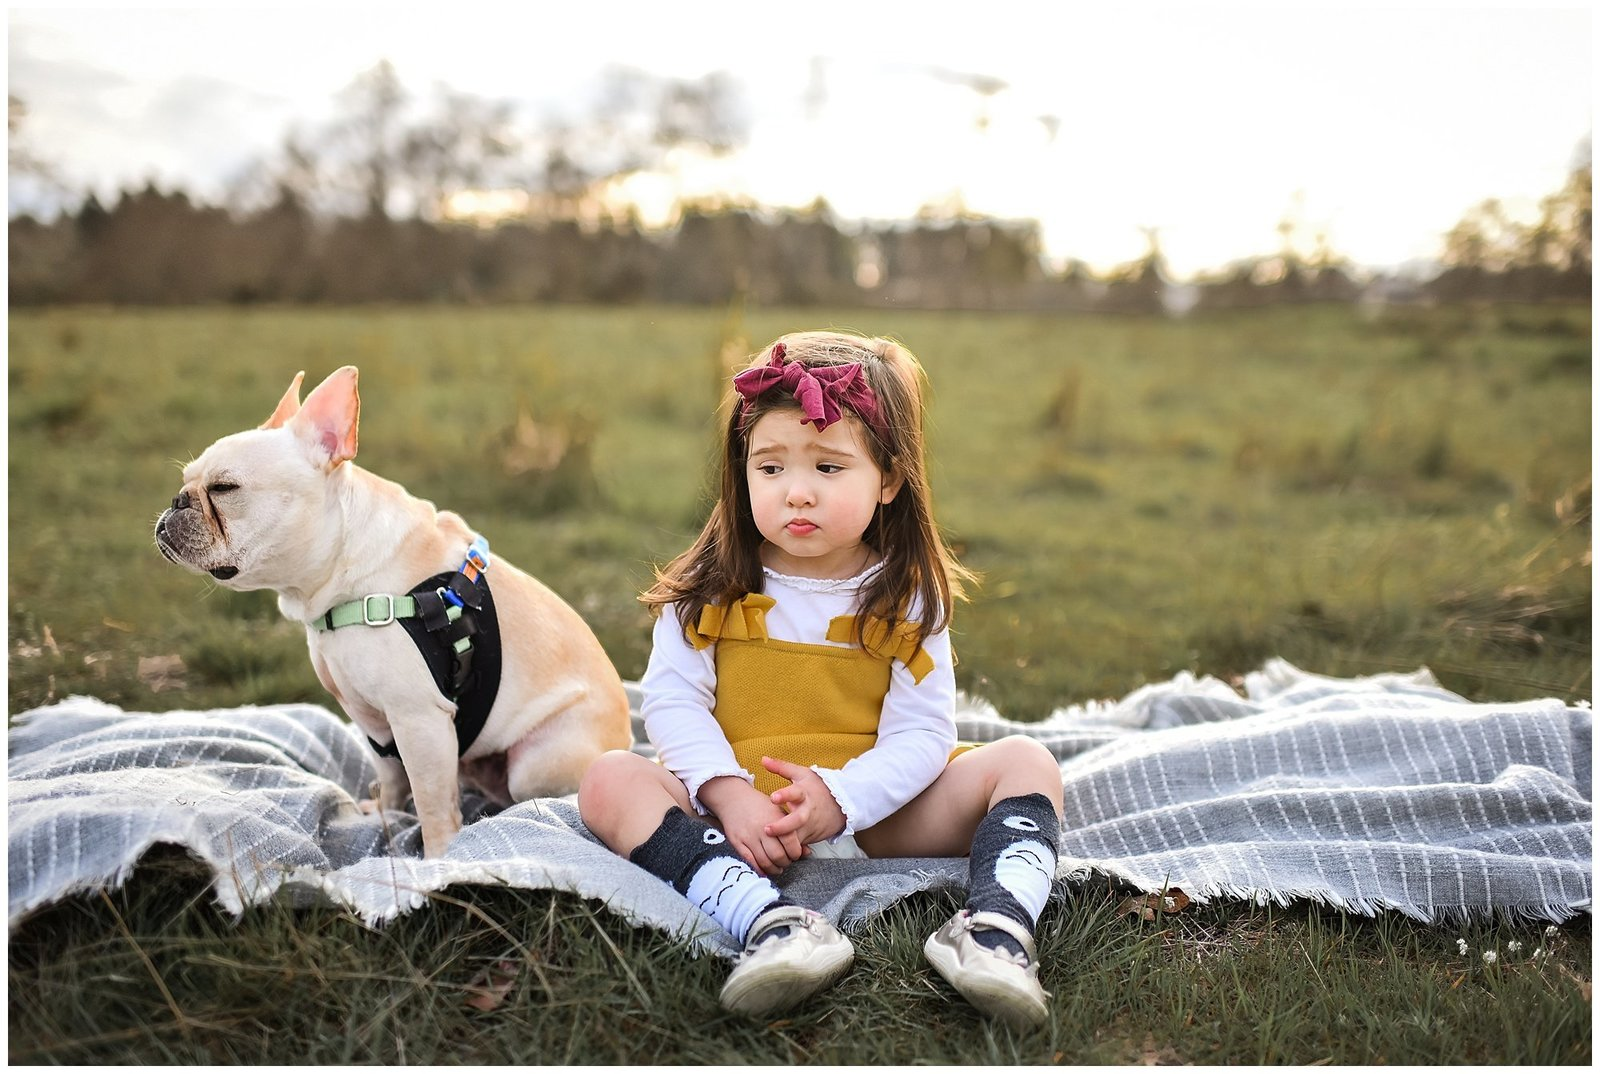 Little girl and french bulldog sitting field looking sad Emily Ann Photography Seattle Photographer.